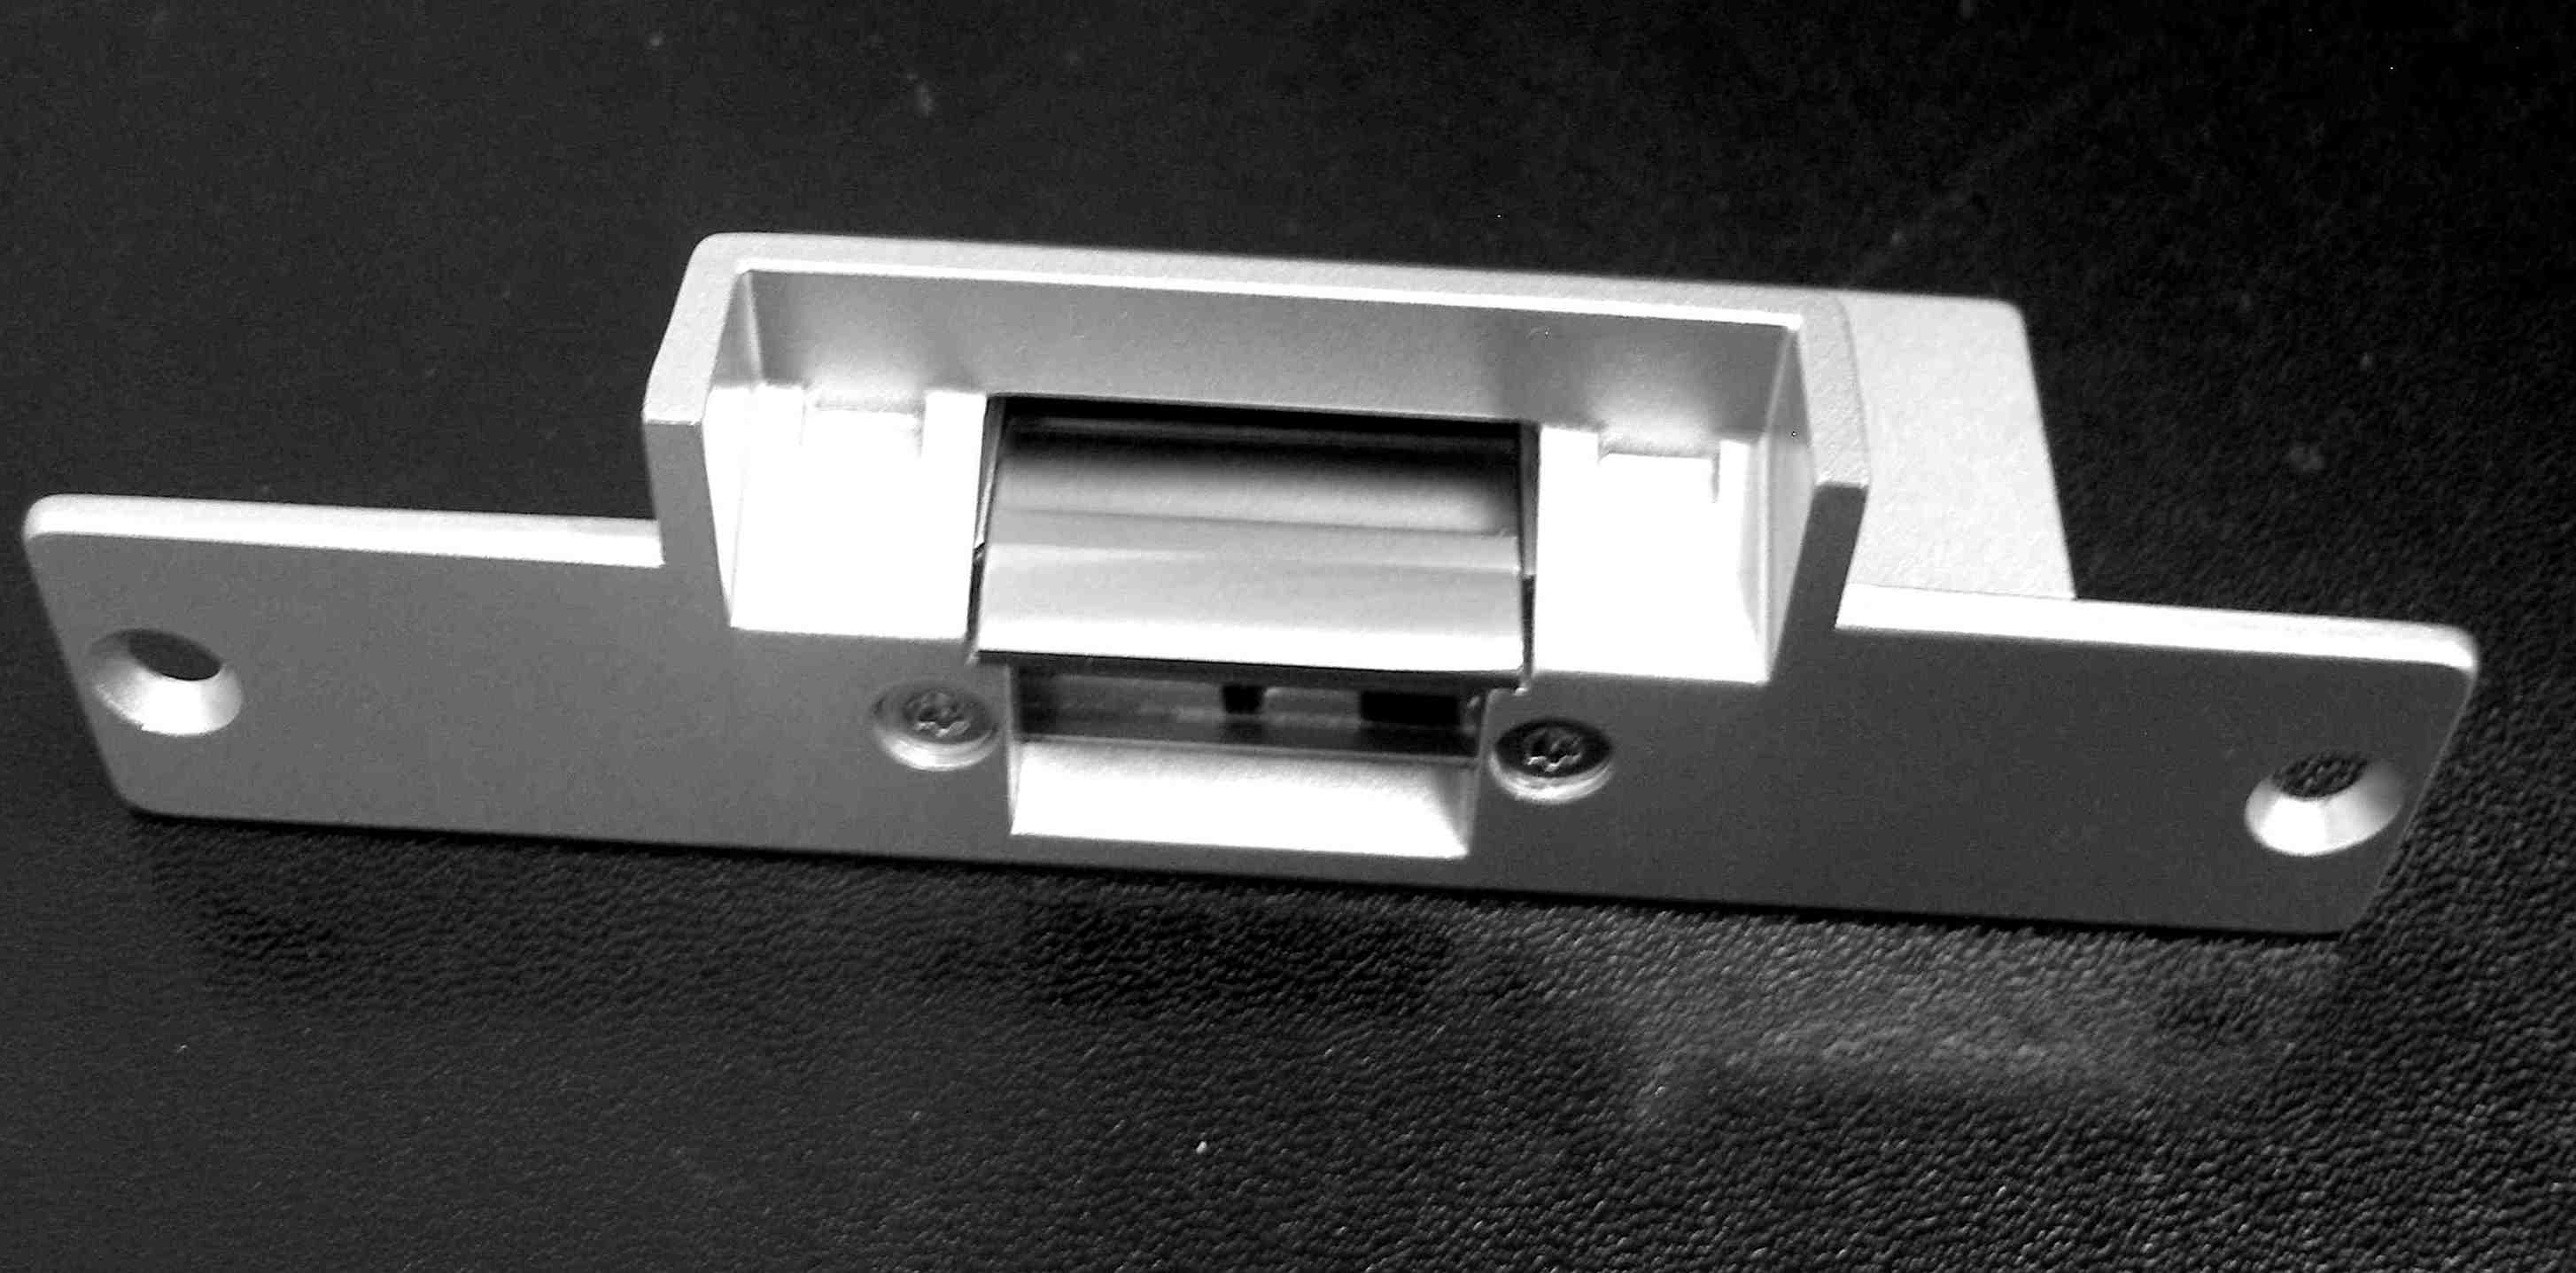 Electric striker 12 volts gate and fence fittings australia for 12 volt door latch